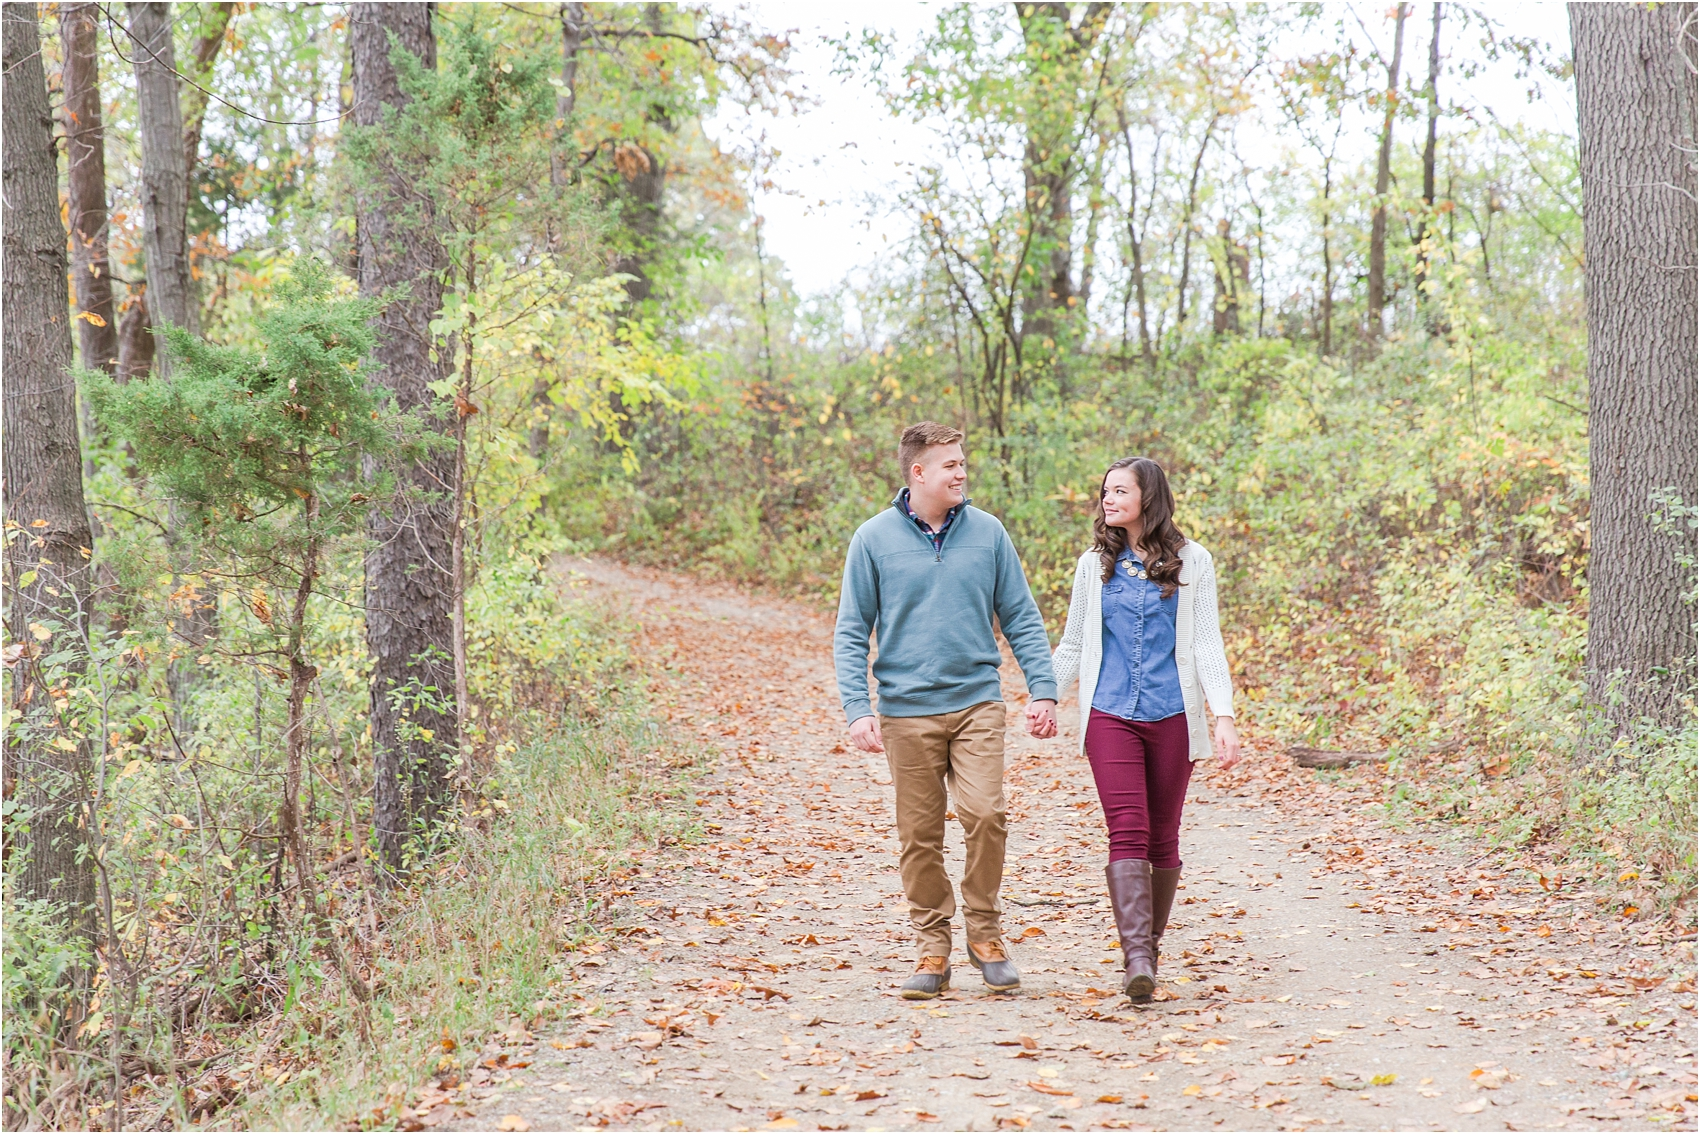 colorful-fall-engagement-photos-at-the-lake-at-huron-meadows-metropark-in-brighton-michigan-by-courtney-carolyn-photography_0026.jpg